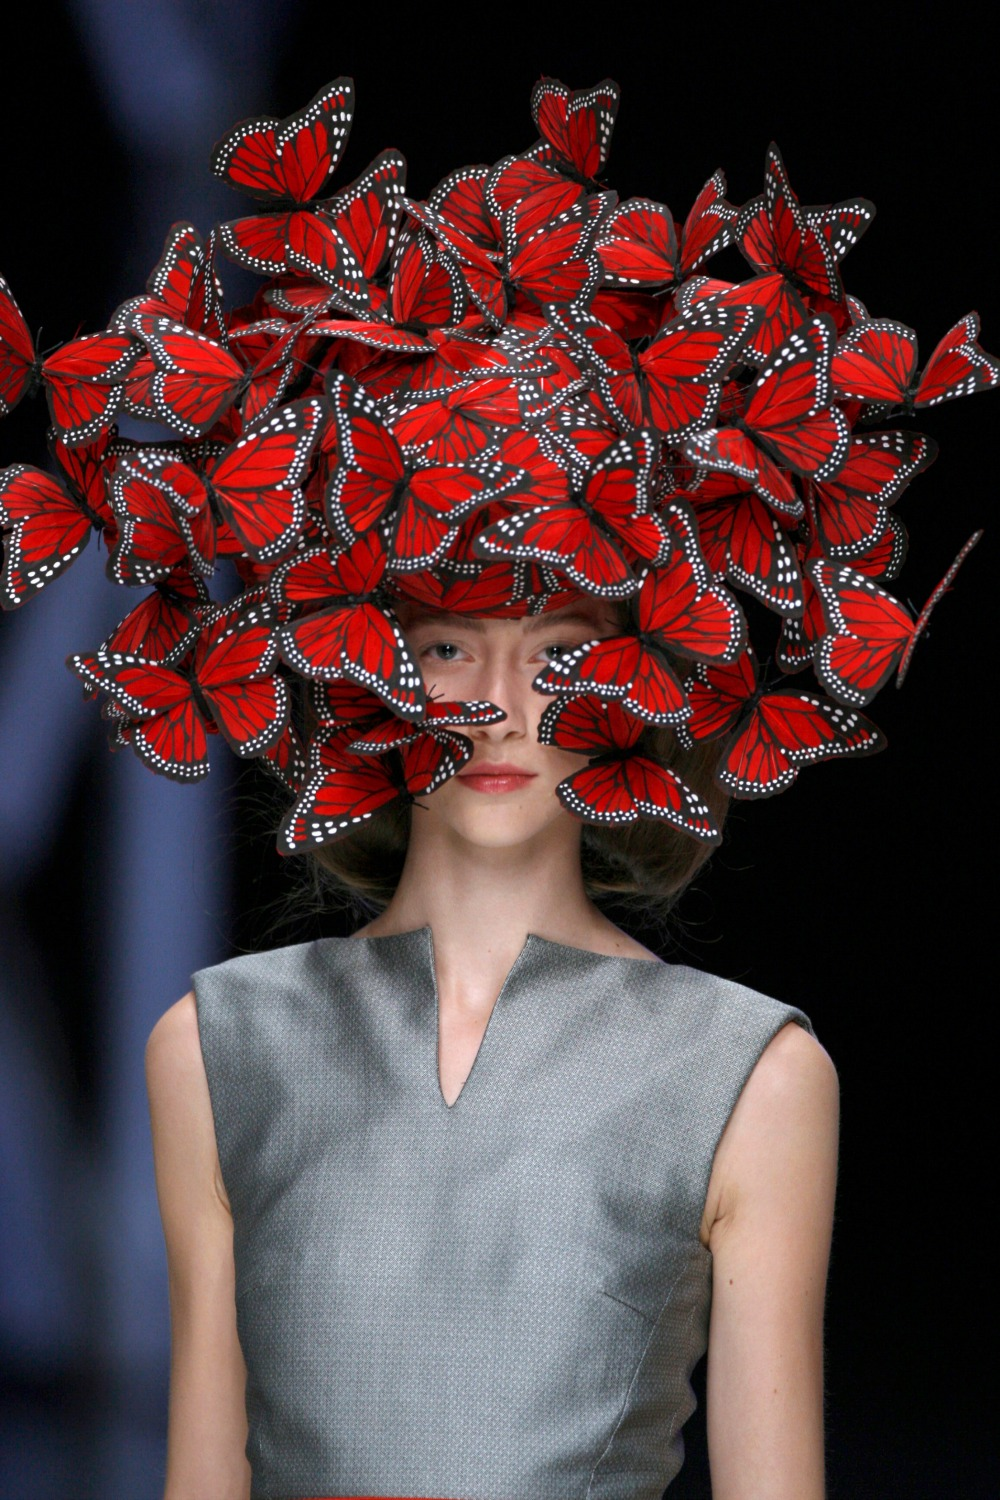 Butterfly headdress of hand painted turkey feathers Philip Treacy for Alexander McQueen, La Dame Bleu Spring Summer 2008 © Anthea Simms